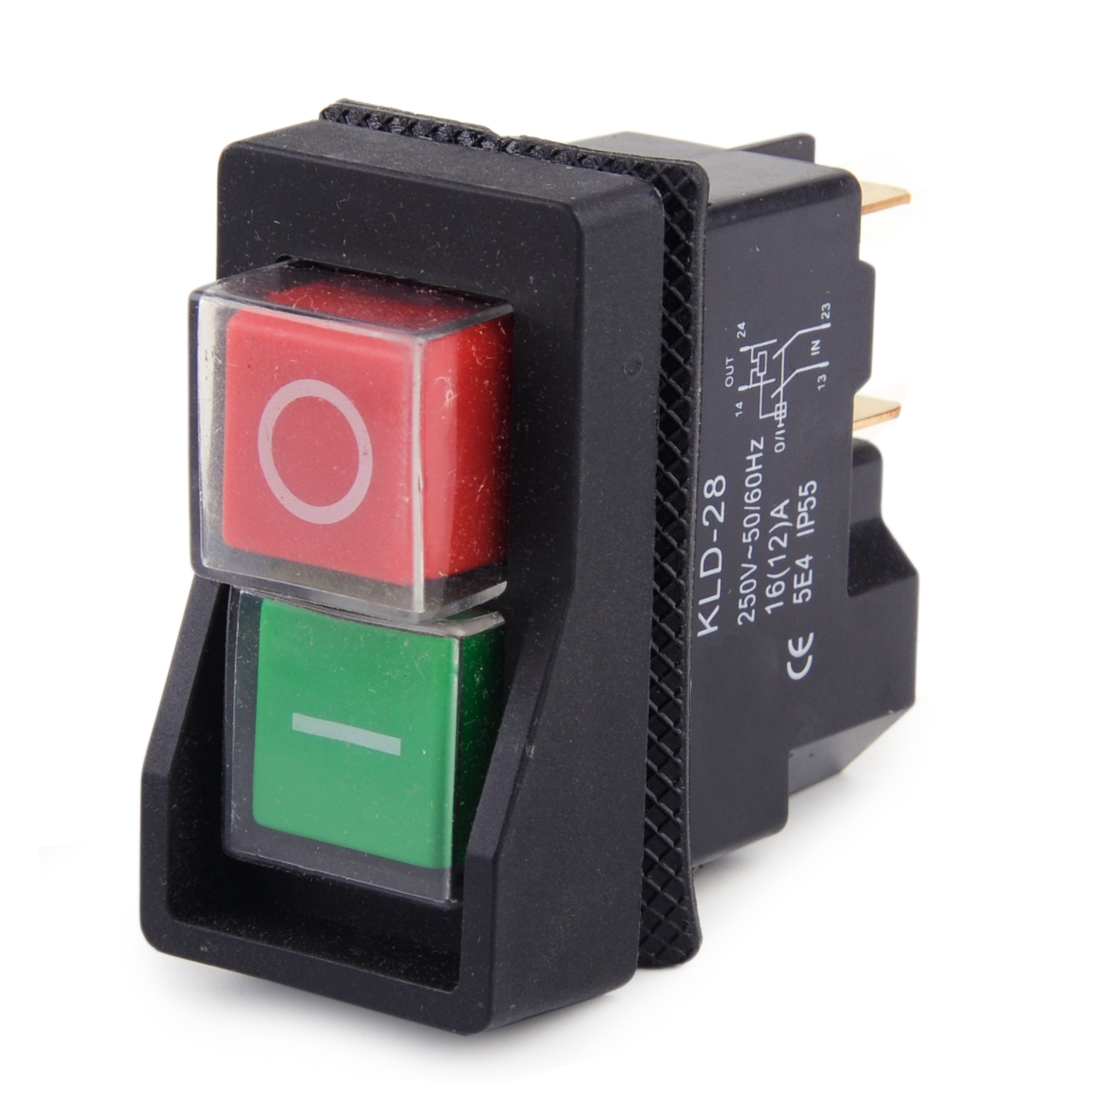 Furniture Candid 250v Ip55 Kjd17 Kld28 4 Pin Start Stop On Off Volt Release Switch Fit For Workshop Machines Pretty And Colorful